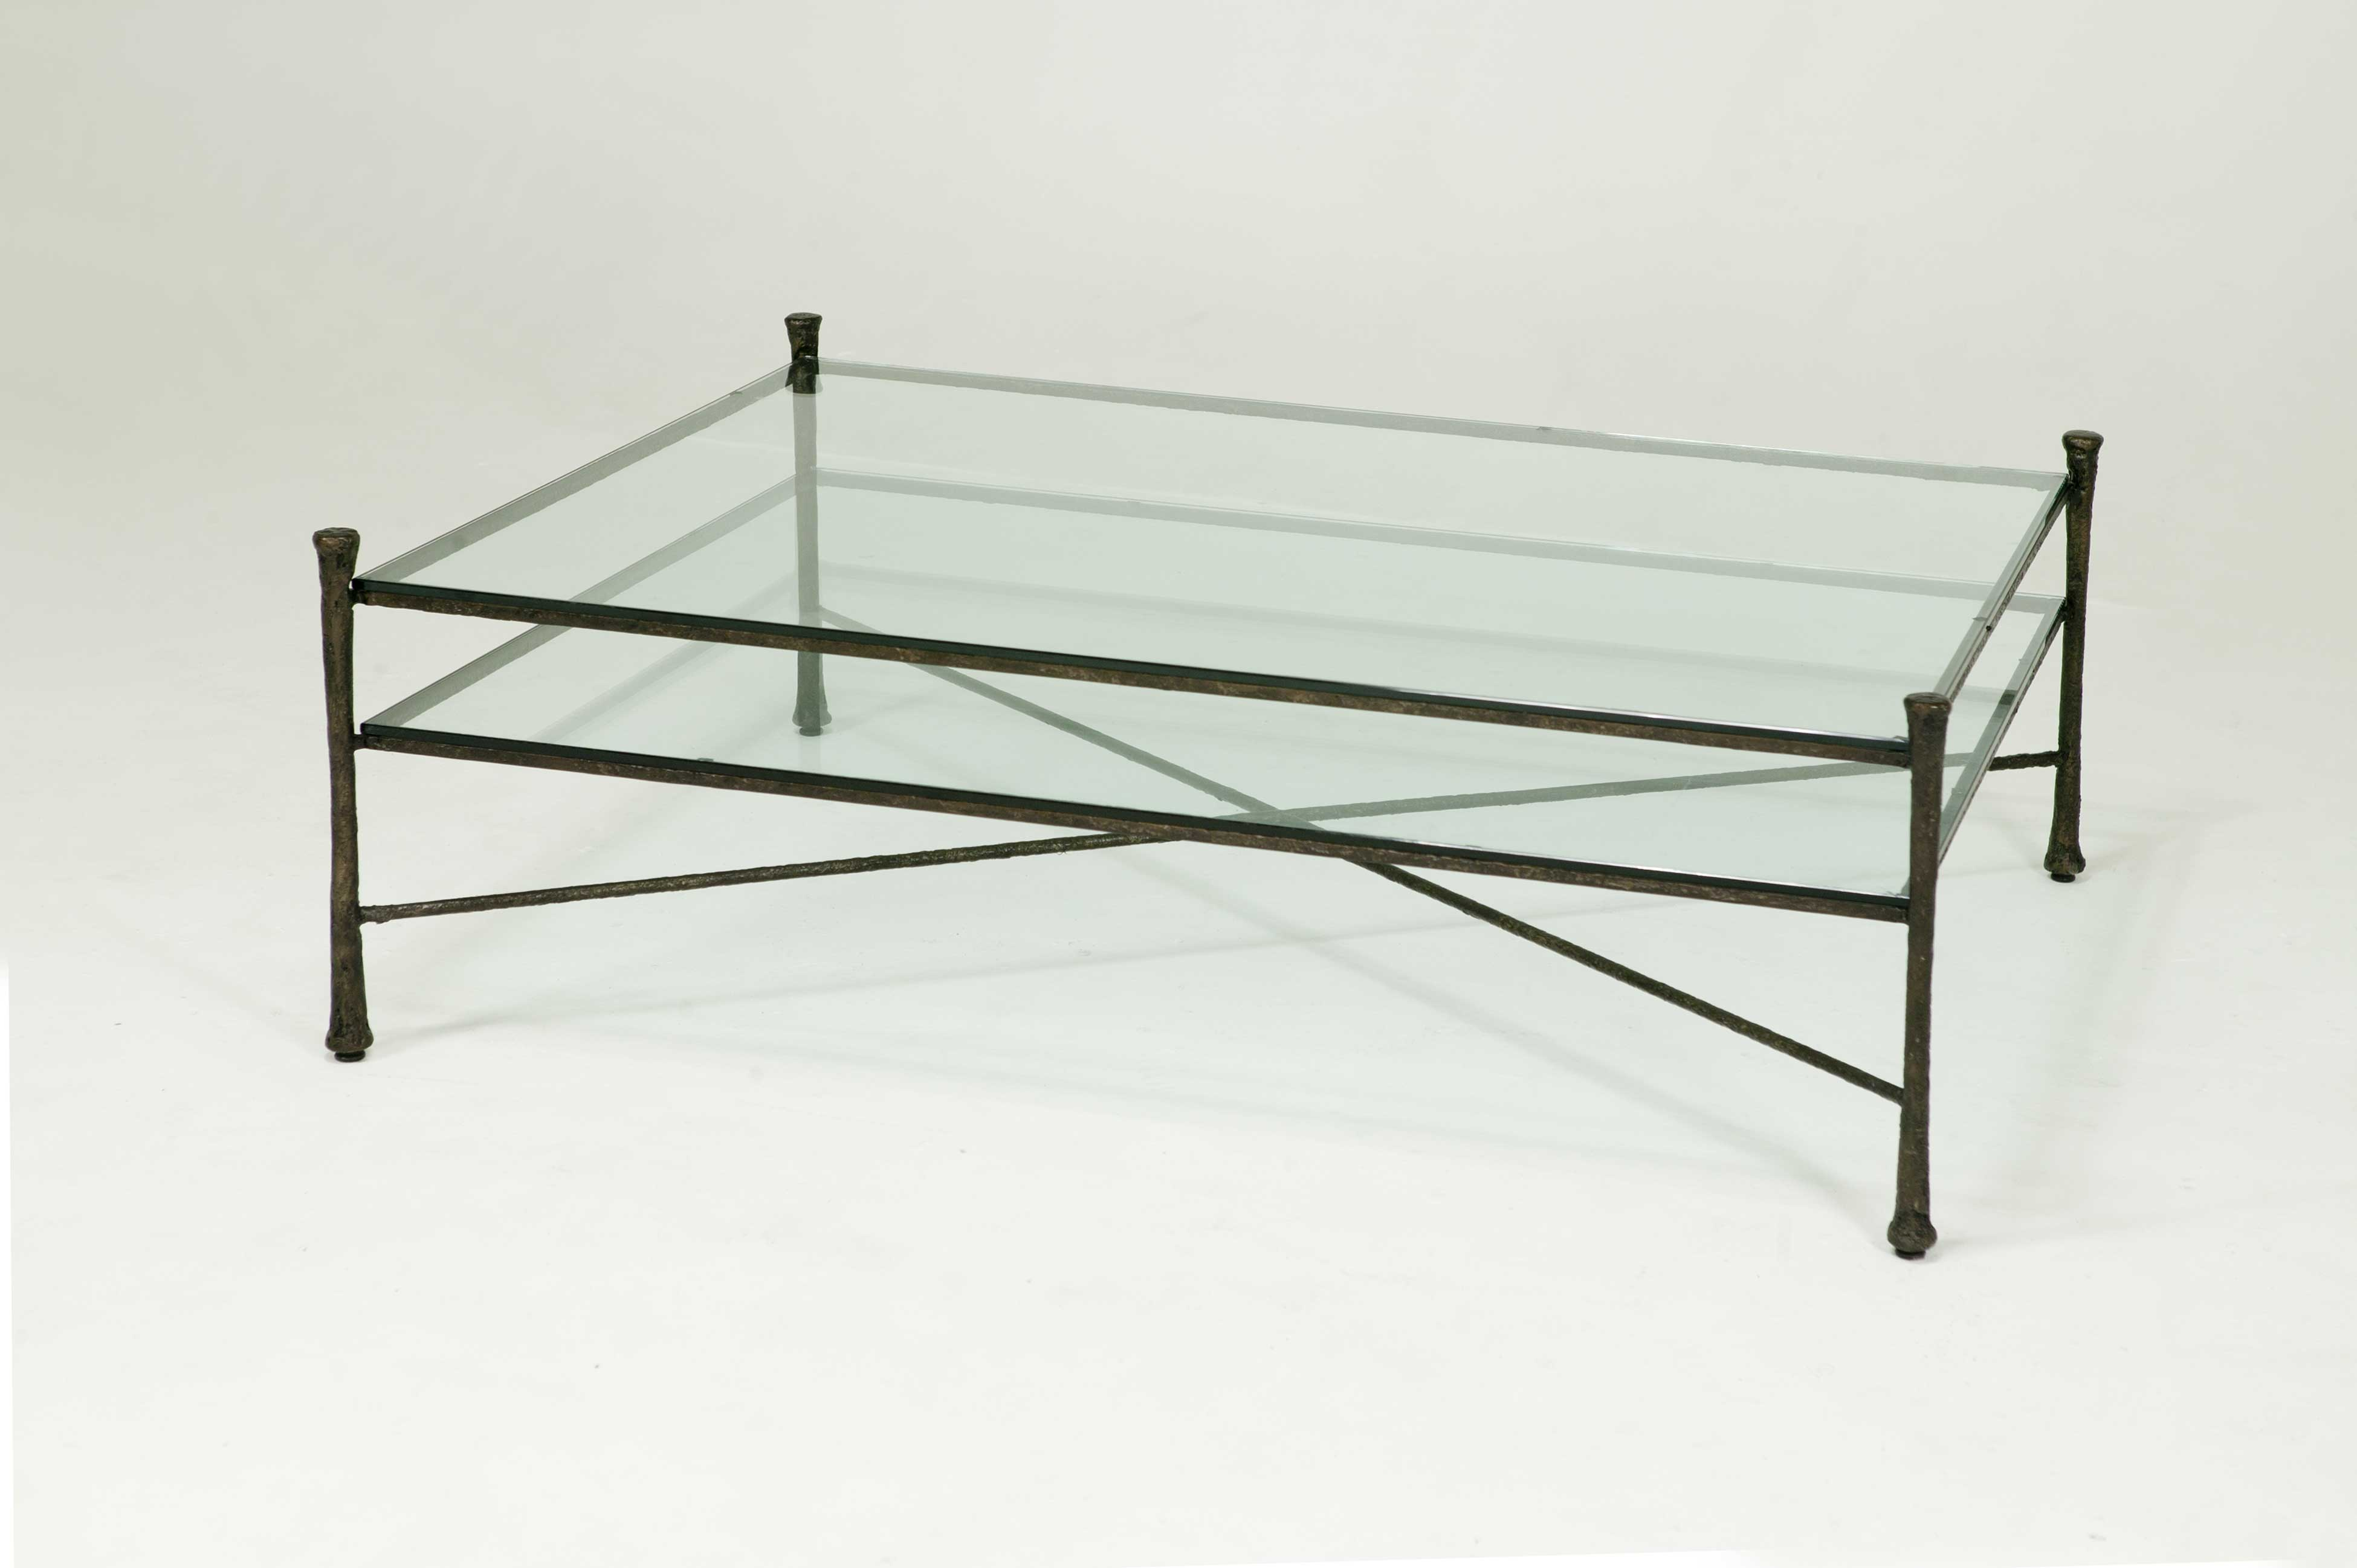 Iron And Glass Coffee Table An Ultra Modern Clear Angled Glass Media Side Table Which As Well As Looking A Fantastic Piece Of Glass Furniture On Its Own (View 1 of 10)